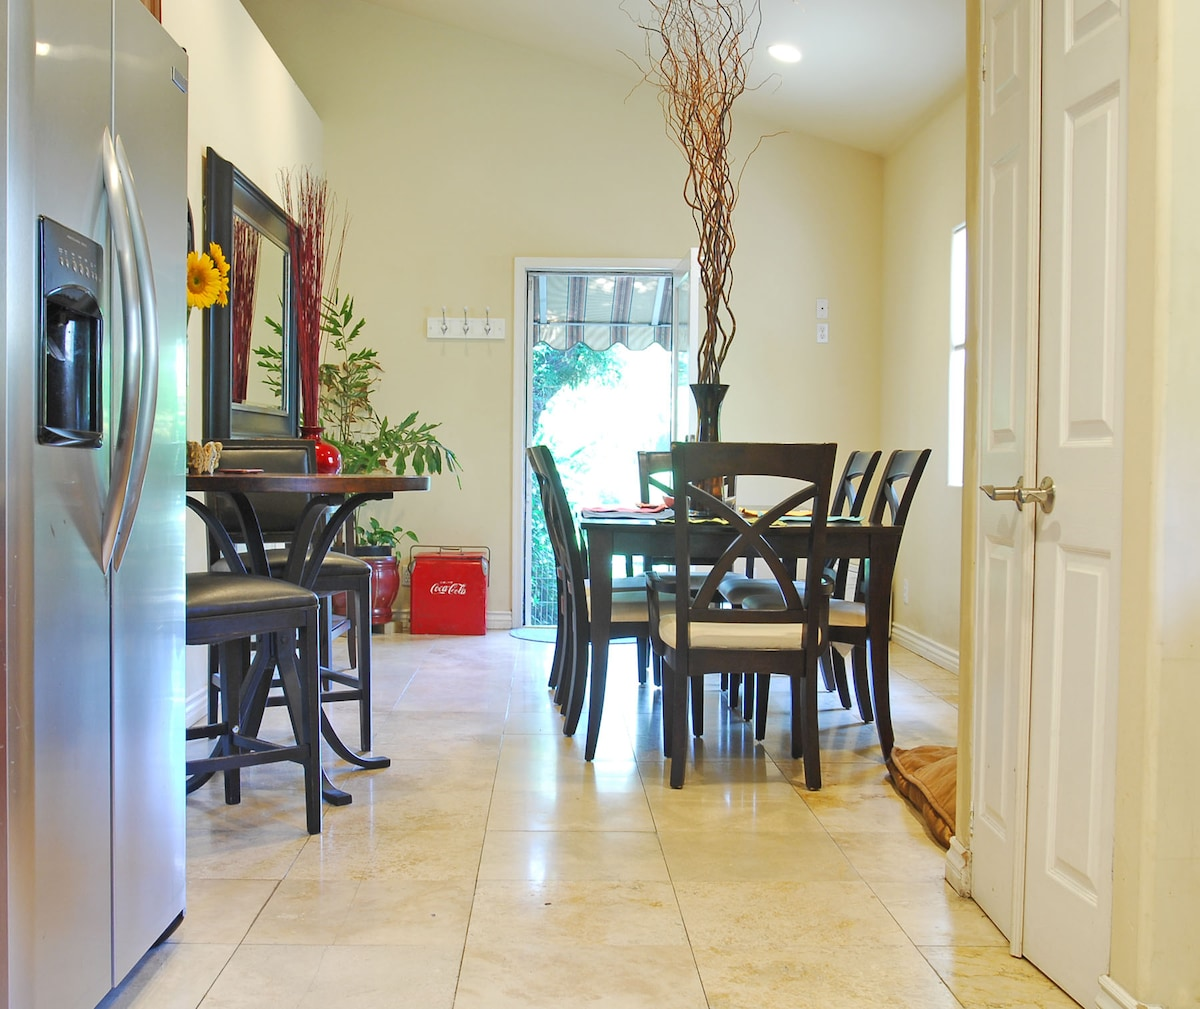 Dinning room with access to the back yard